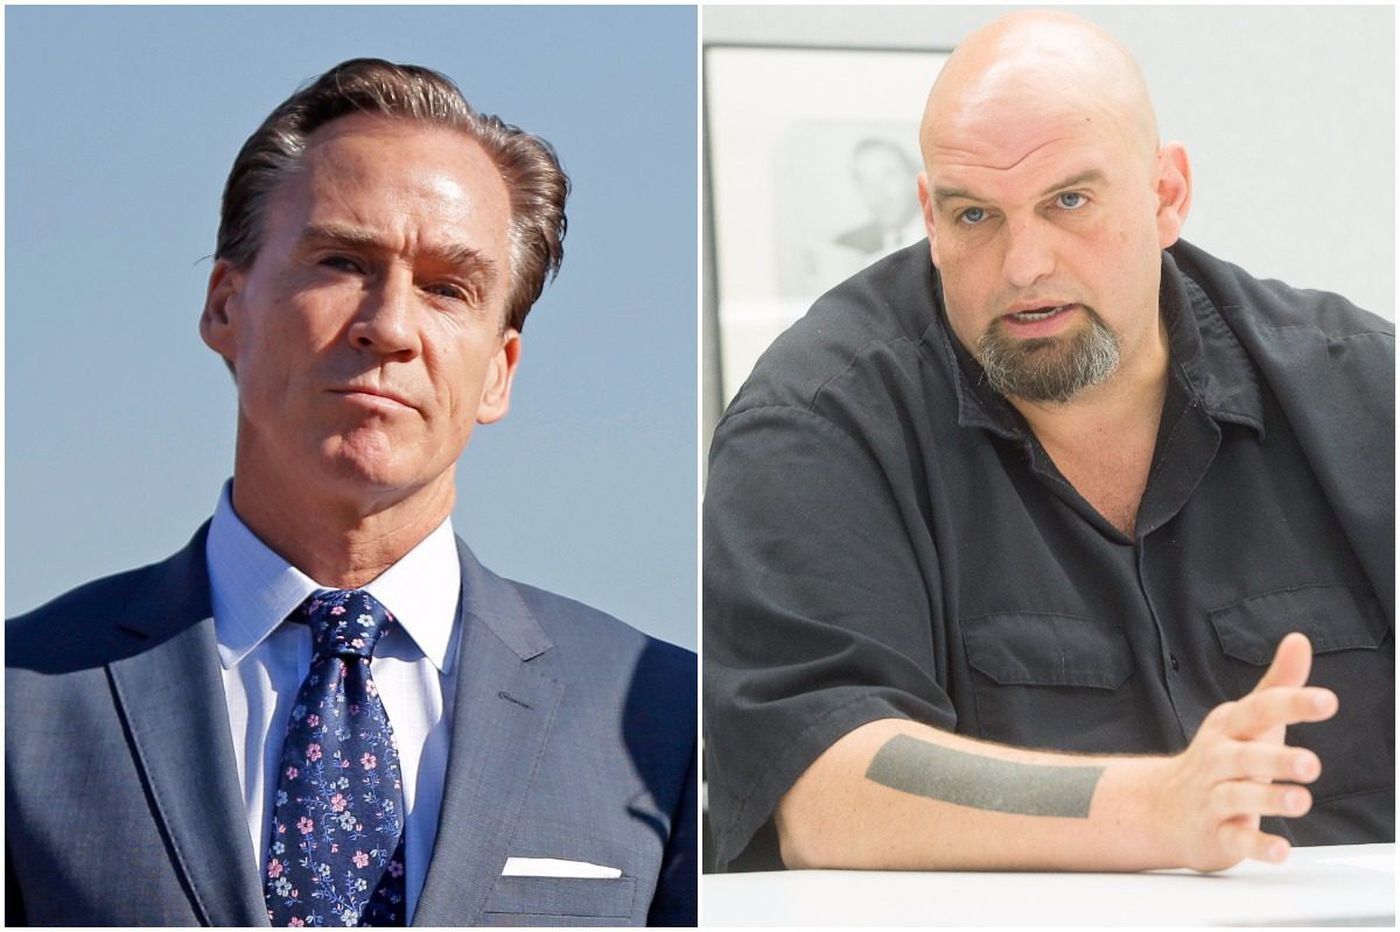 Mike Stack's new problem: John Fetterman and the 2018 primary